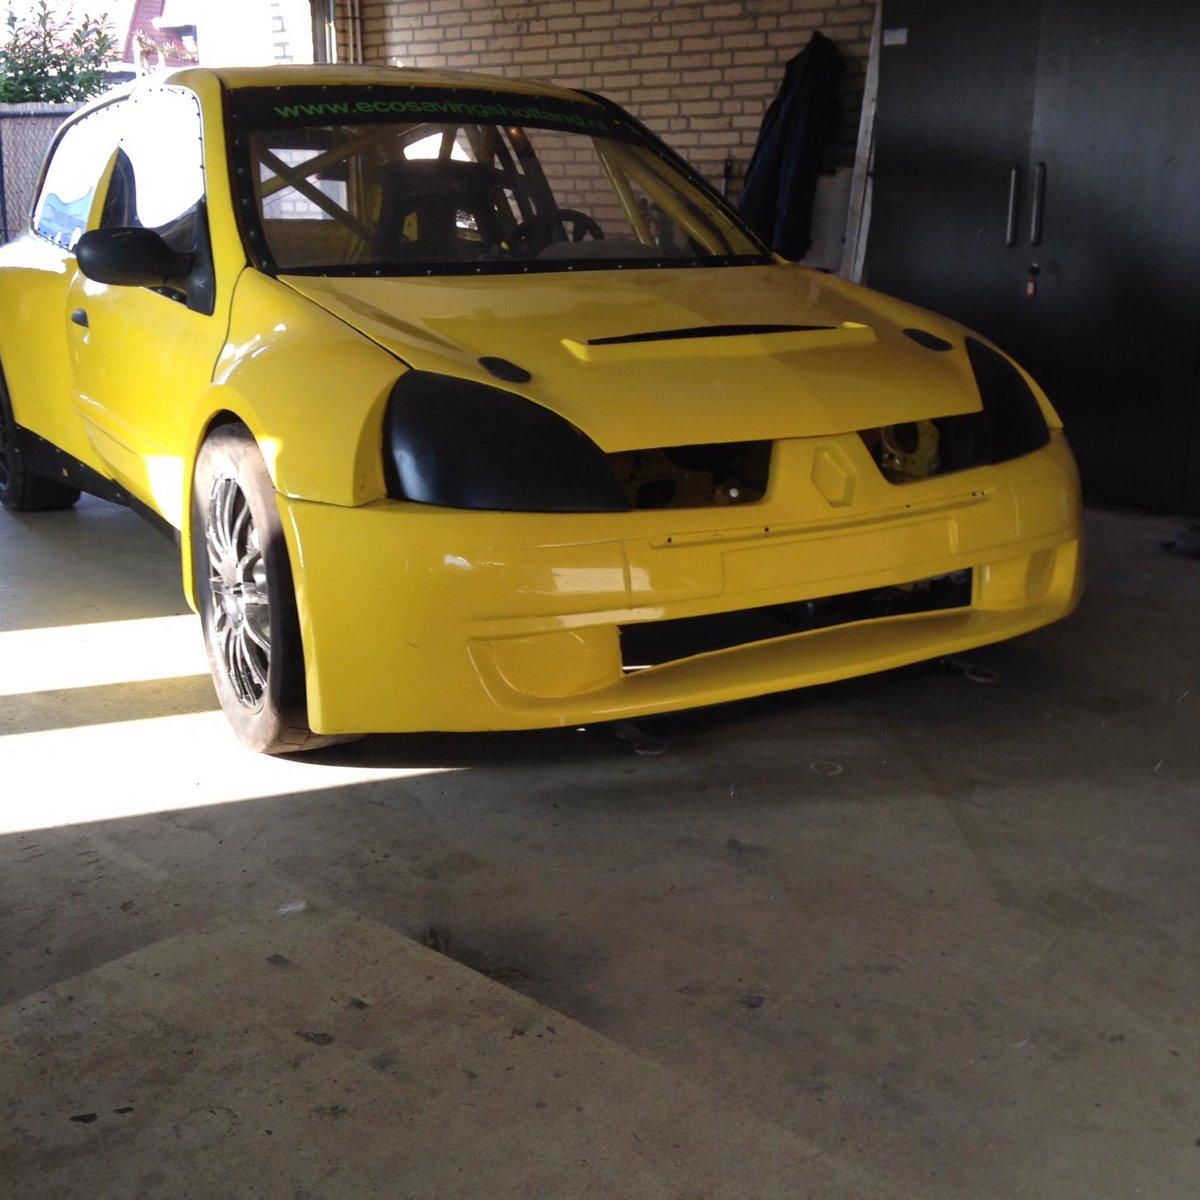 2002 Renault Clio Maxi Super 1600 FIA papers. For Sale (picture 2 of 6)